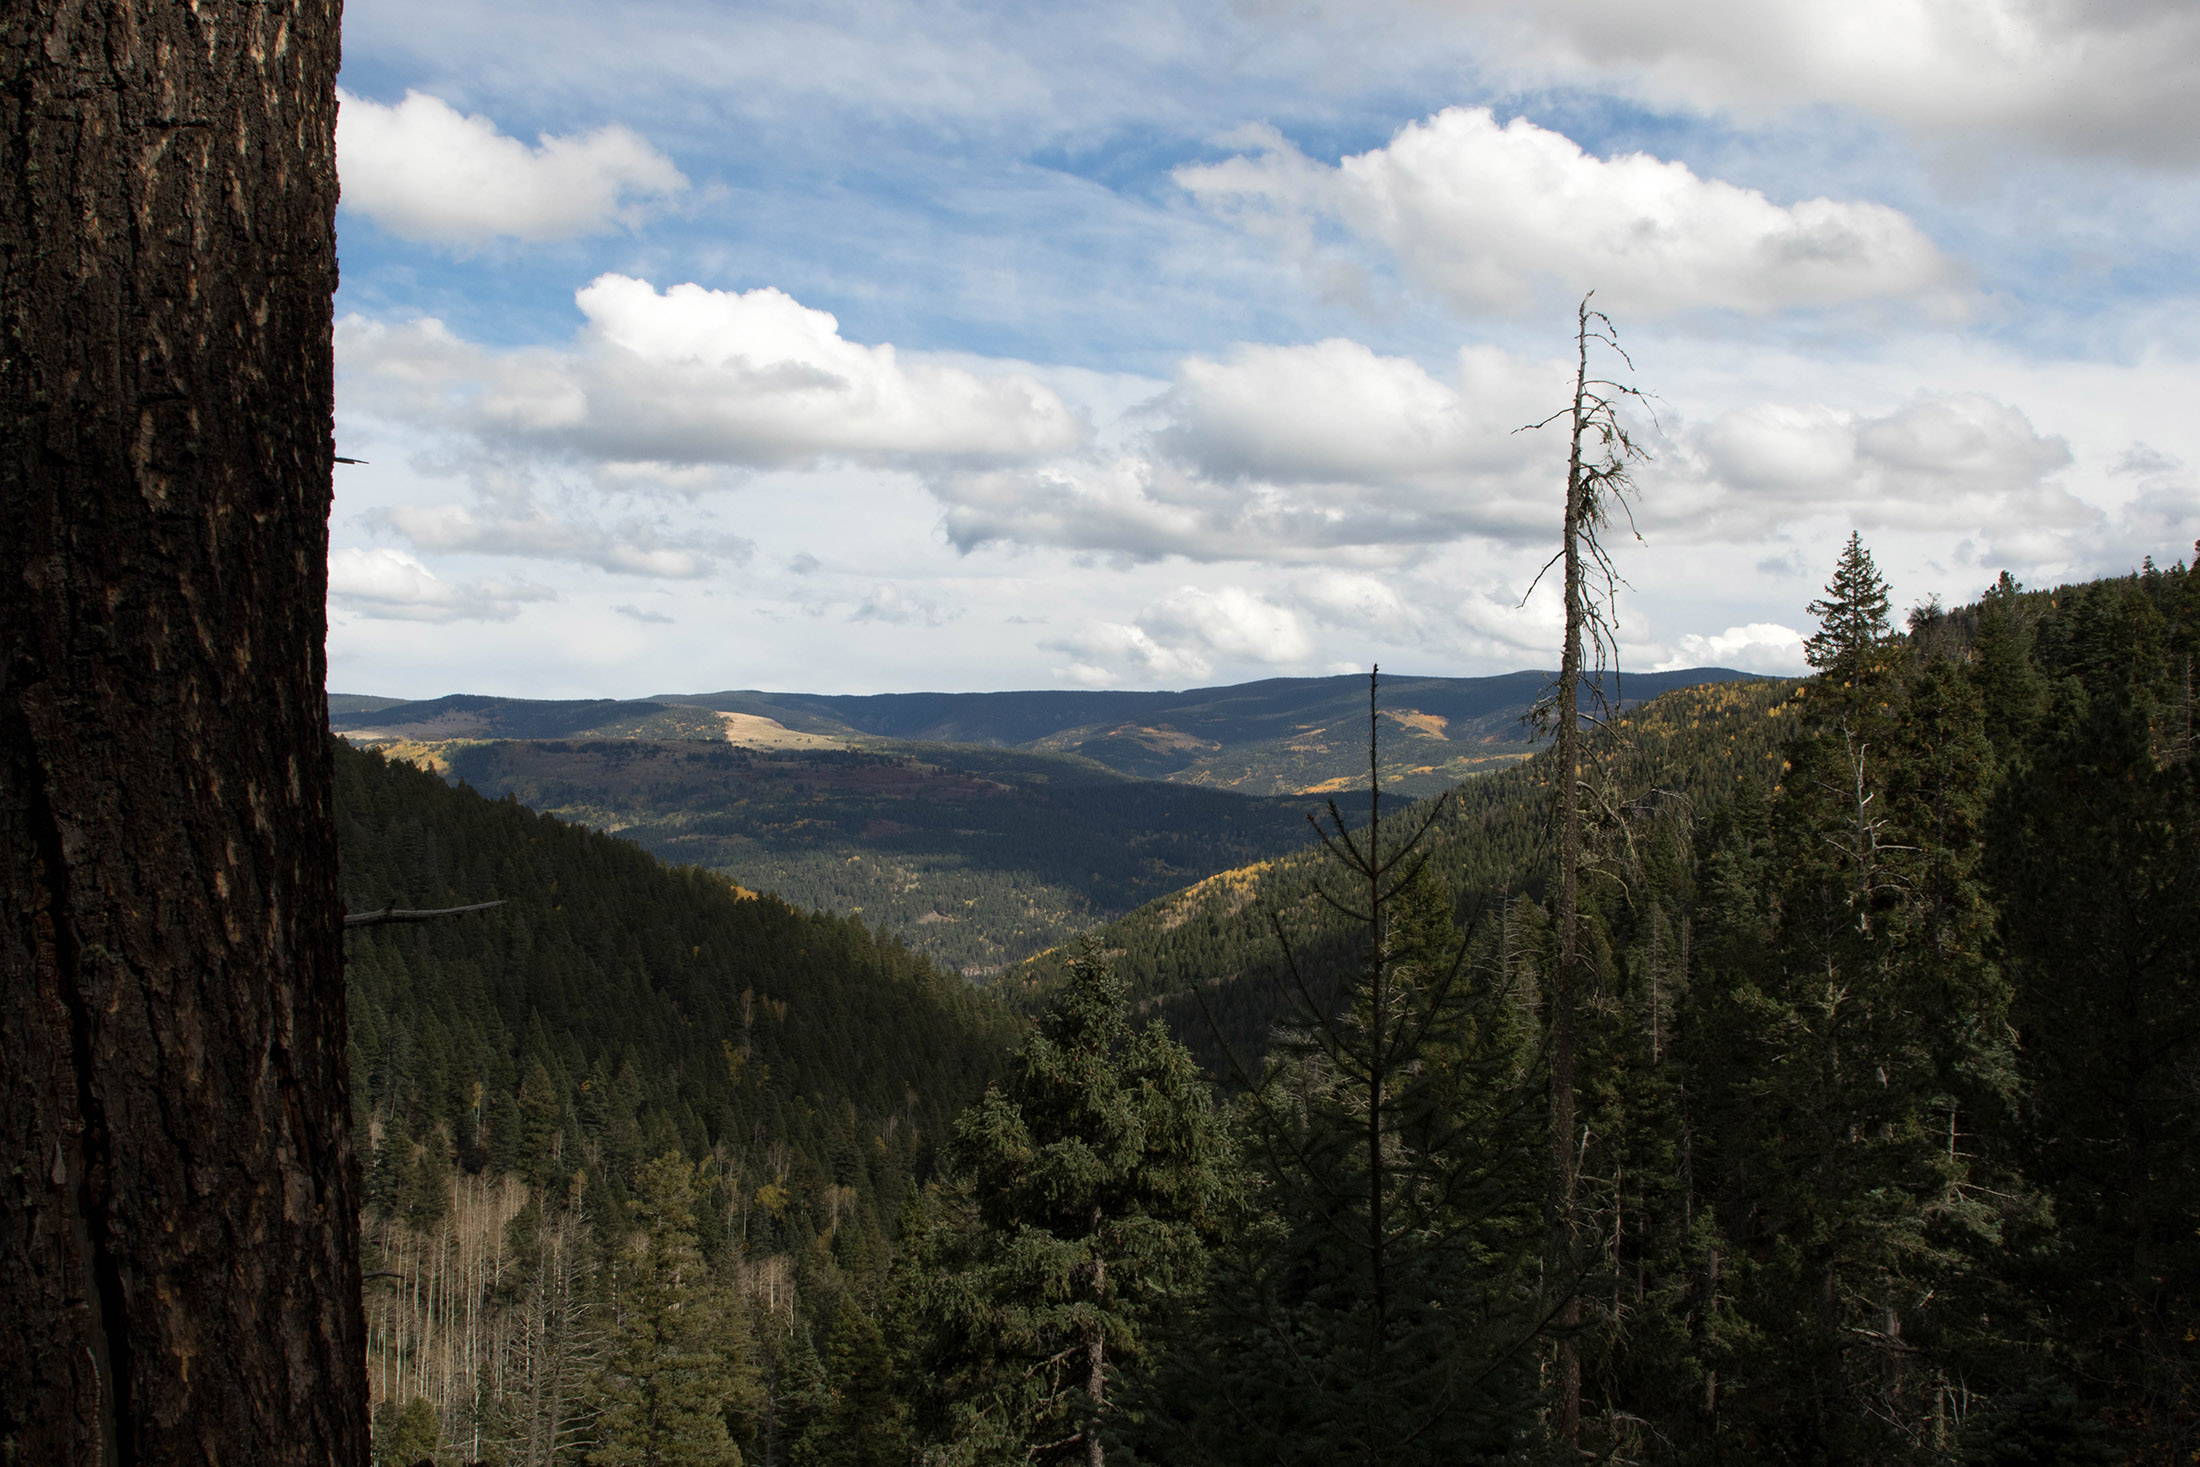 The view from the trail